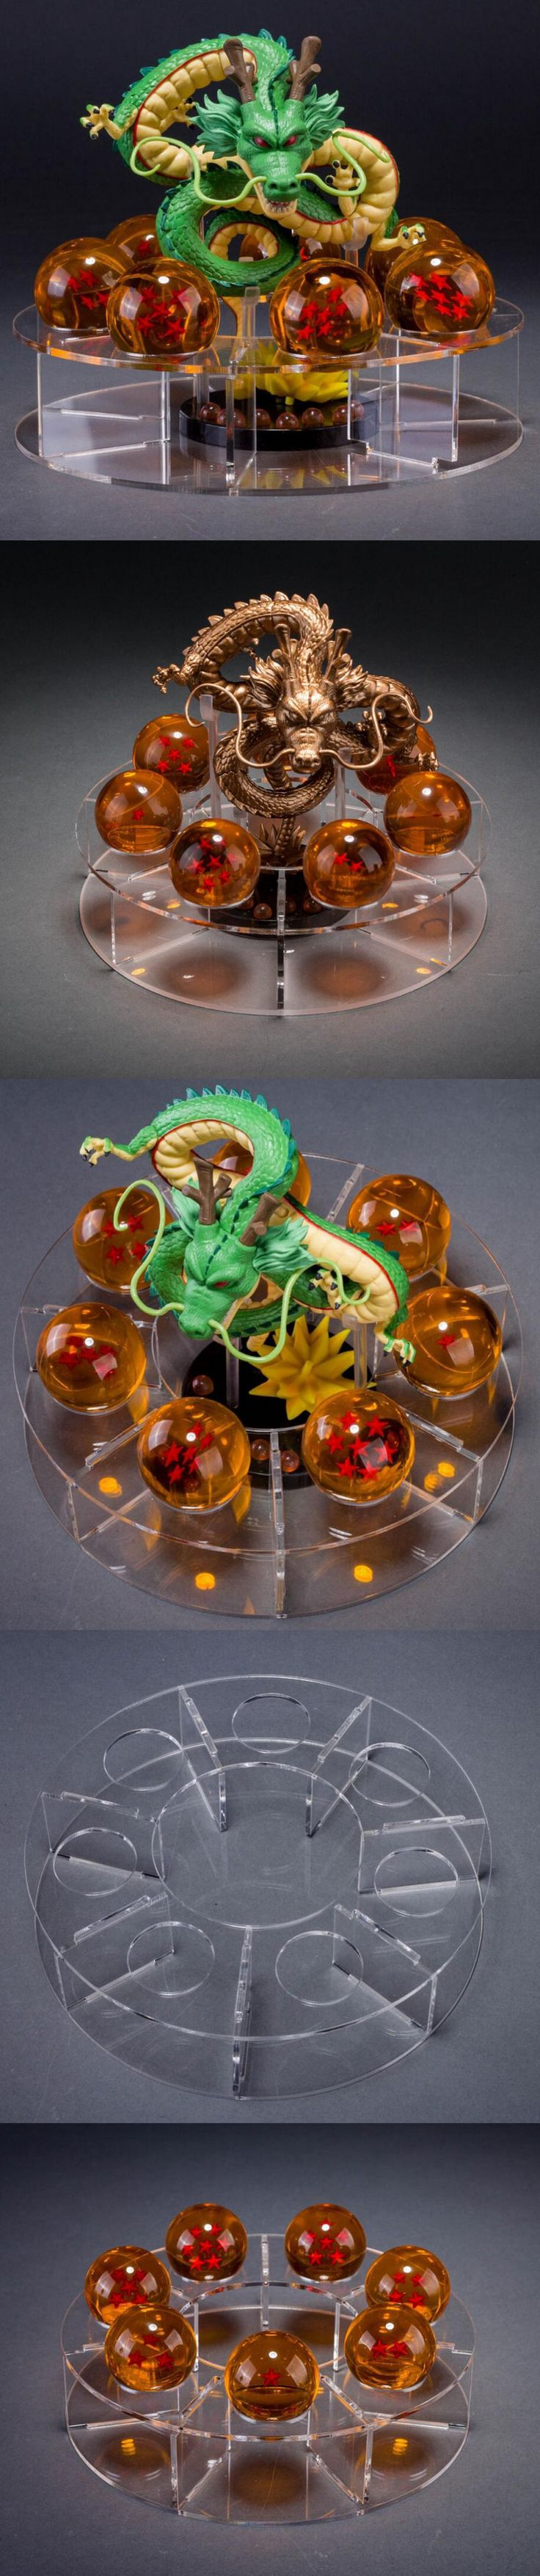 Les 25 meilleures id es de la cat gorie figurine dragon for Decoration dragon ball